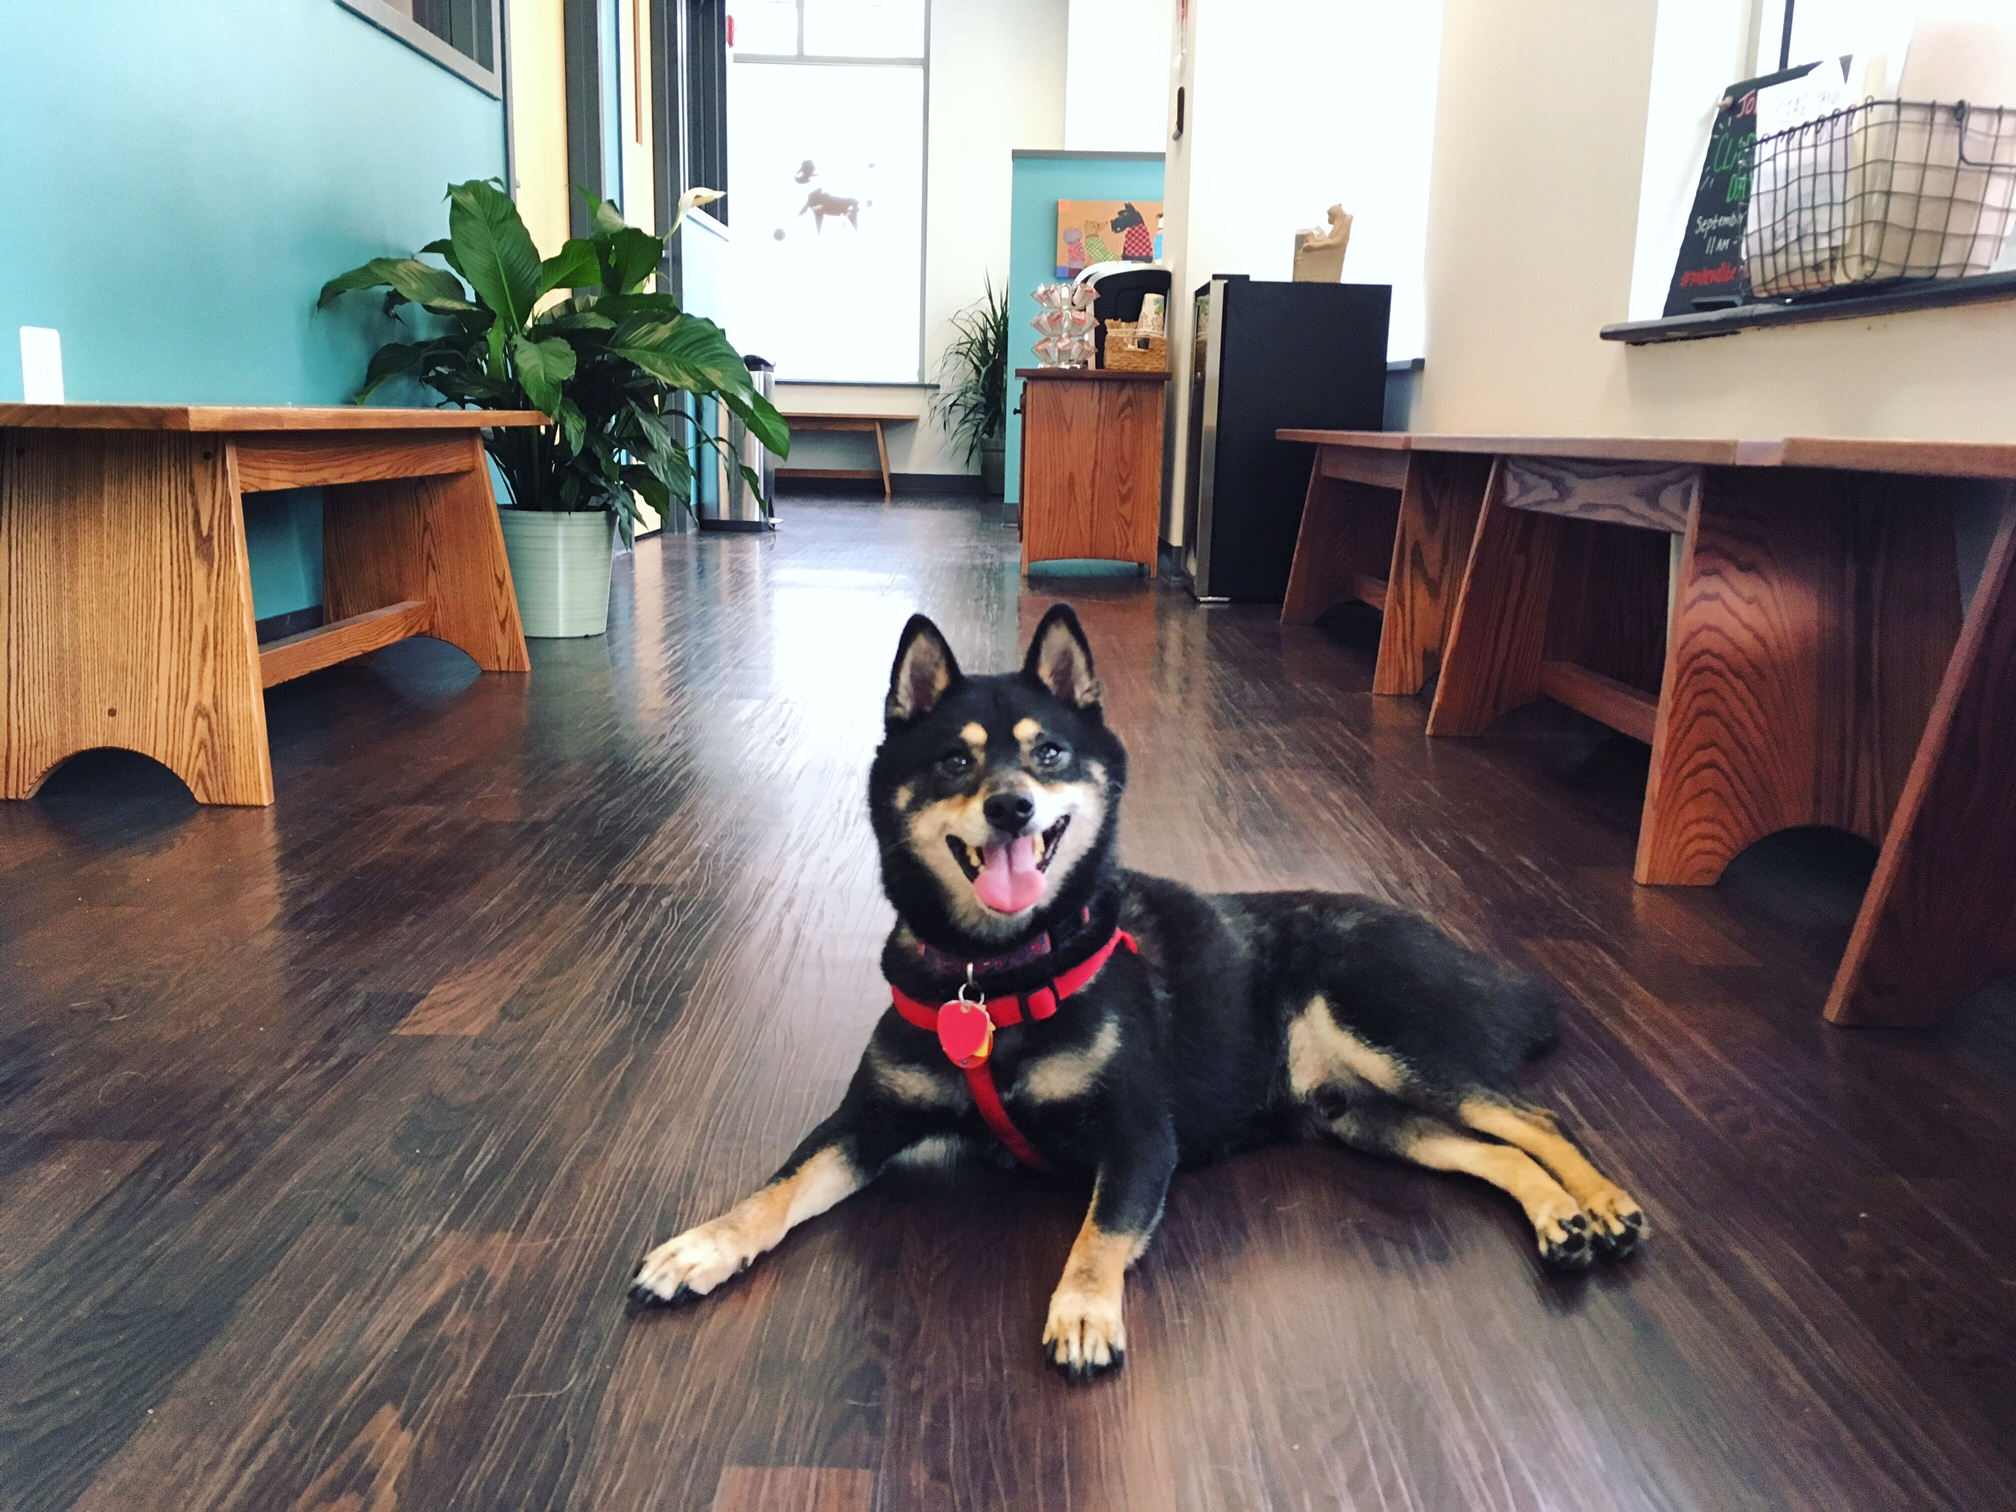 Clarendon Animal Care Veterinary Clinic Arlington Virginia Shiba Inu